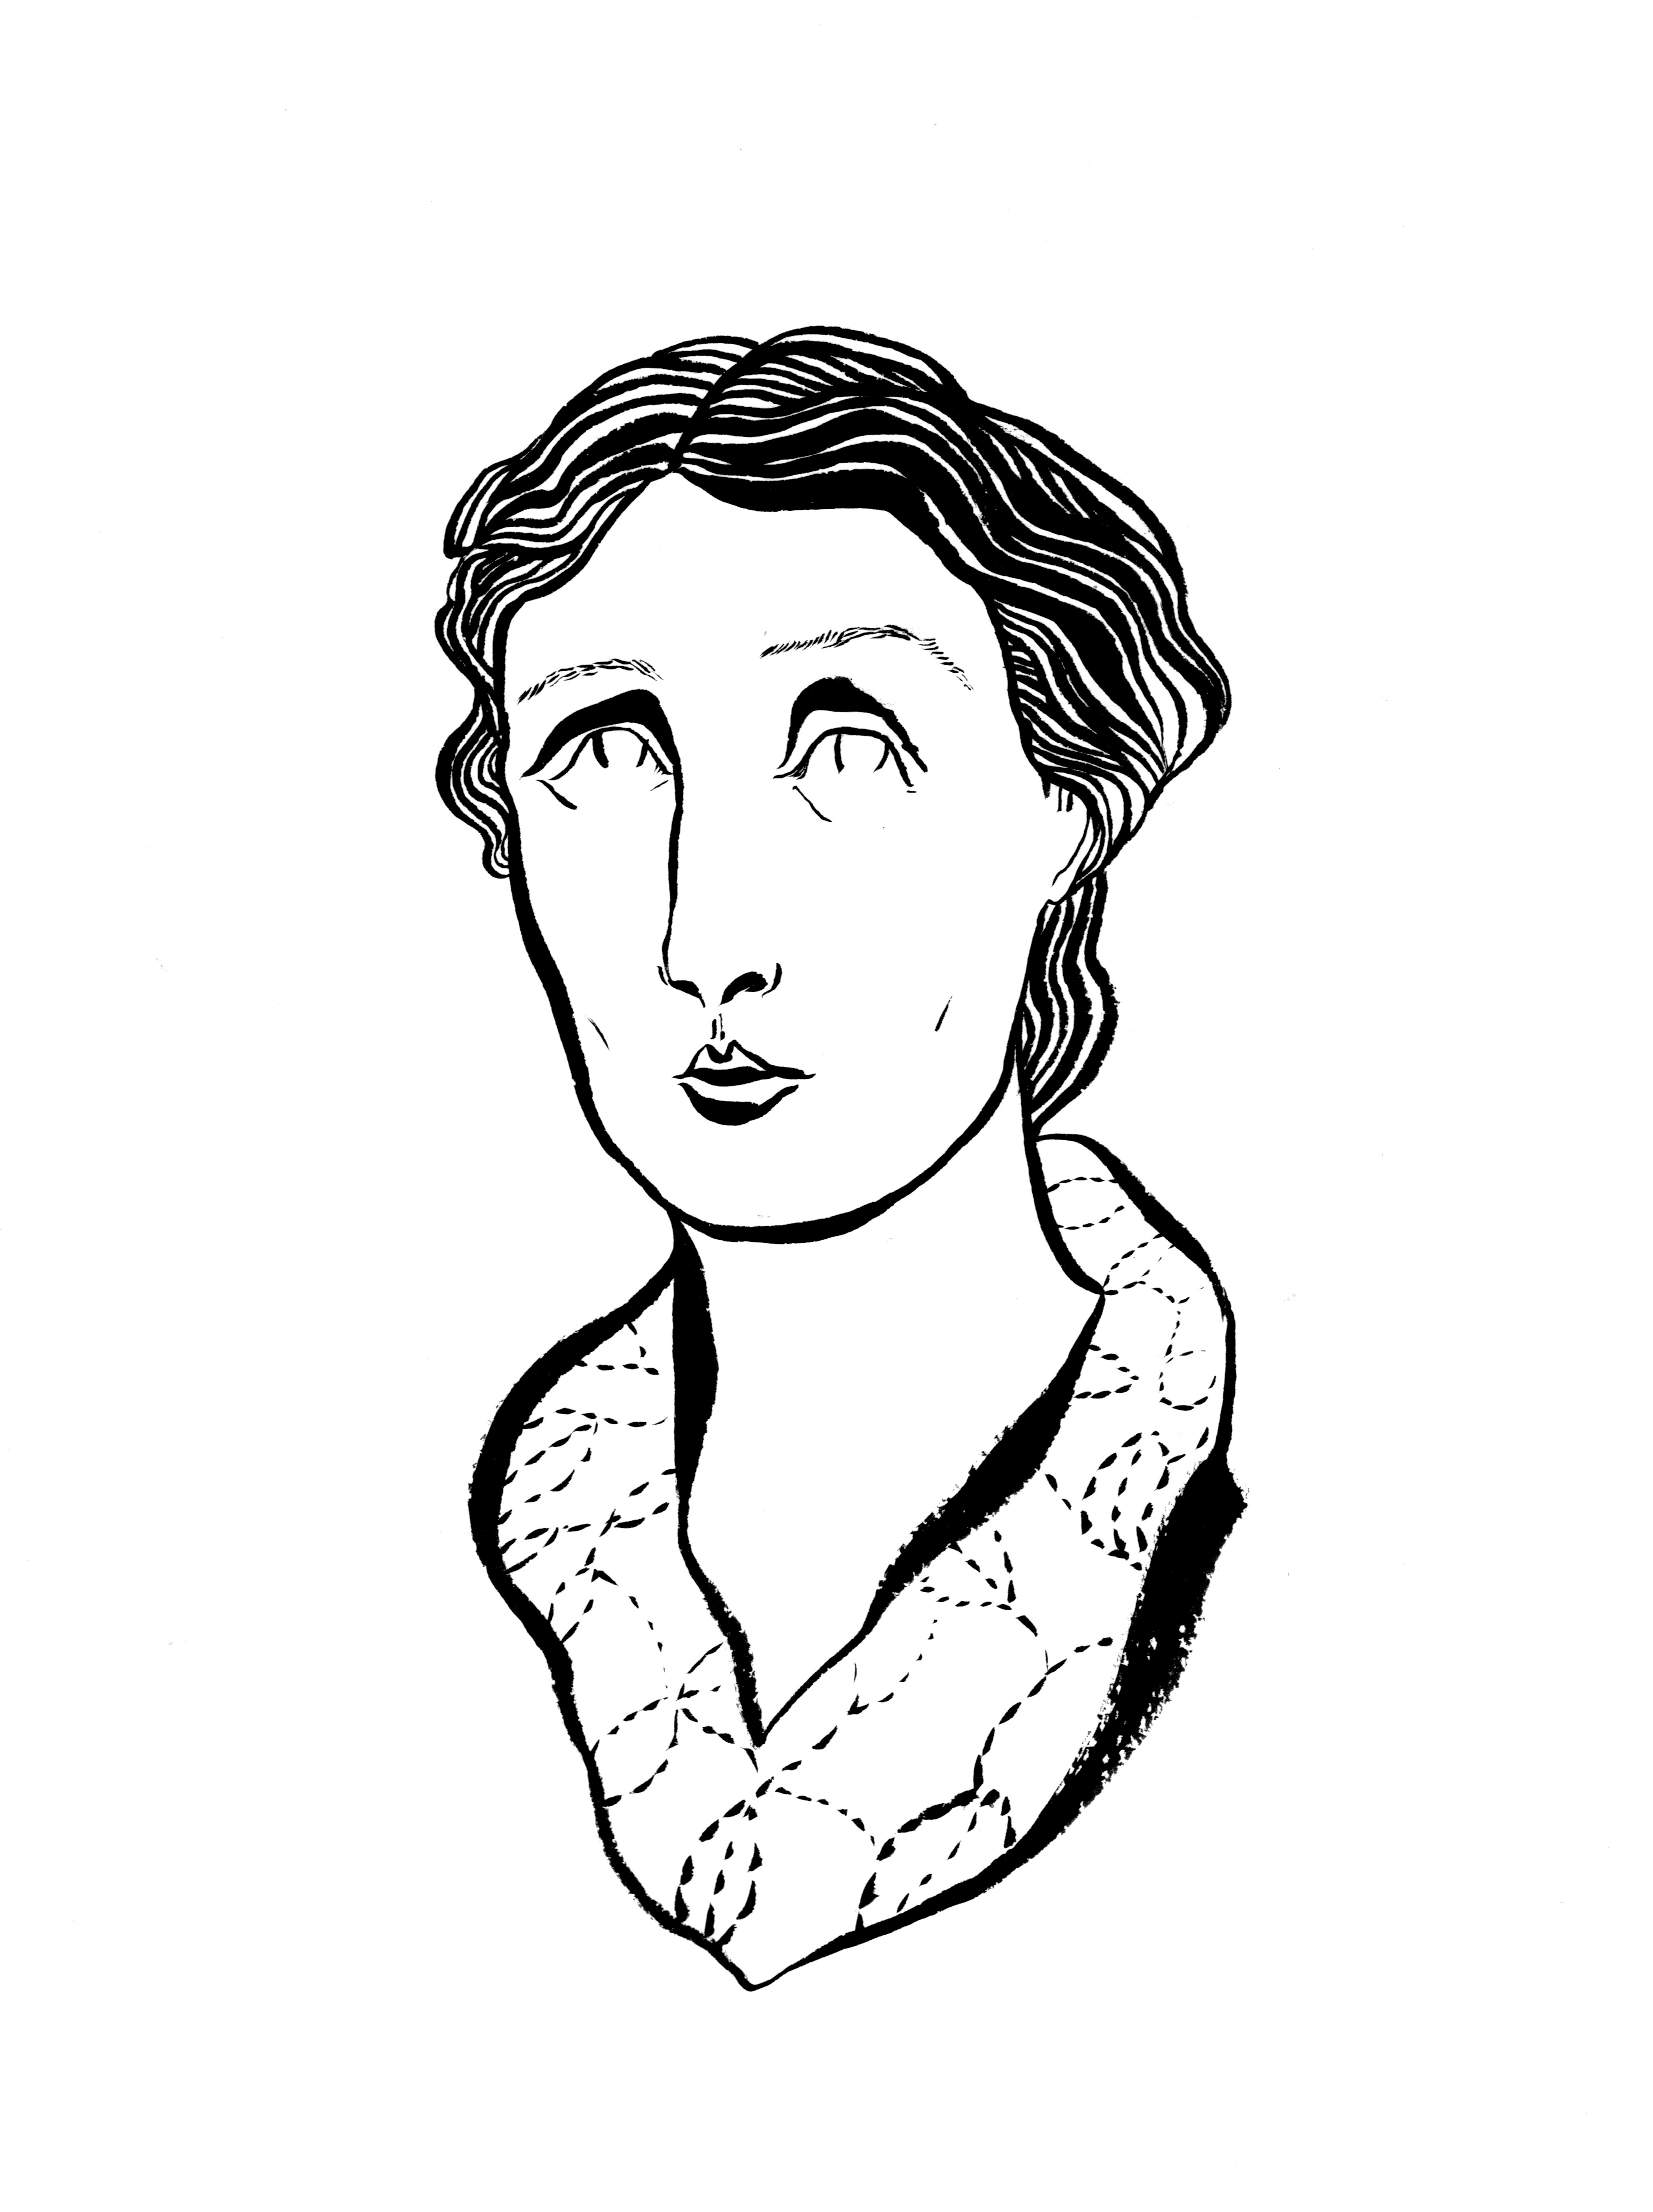 'Virginia Woolf Portrait'